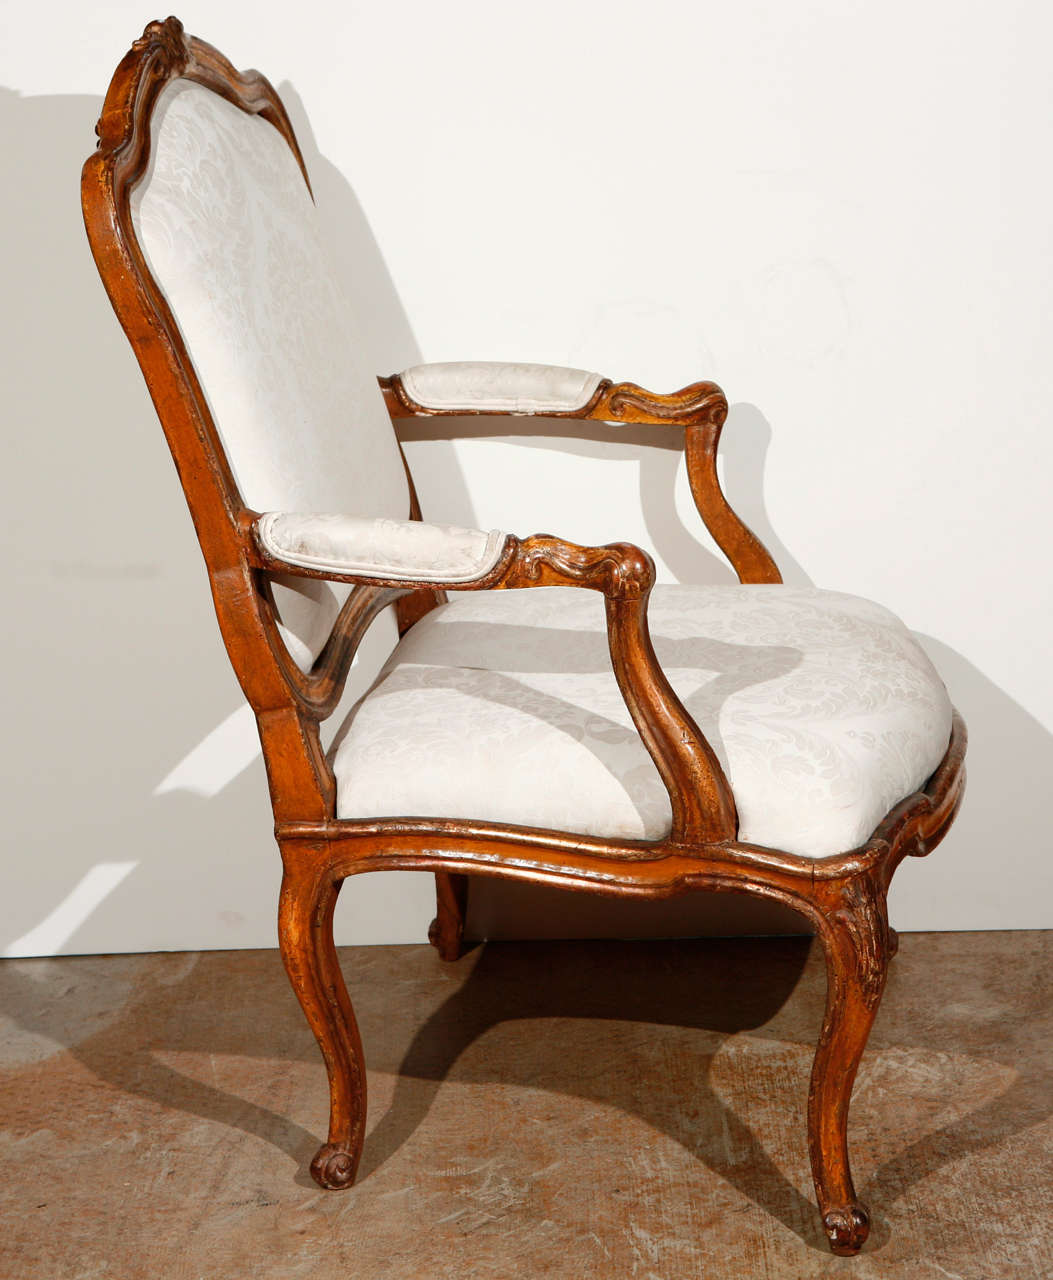 rococo chair styles The rococo series (ロココシリーズ rokoko shirīzu) is a series of furniture in new leaf the items of furniture are themed after the rococo period of european art, with dark wooden legs and features, and gray patterned fabrics.